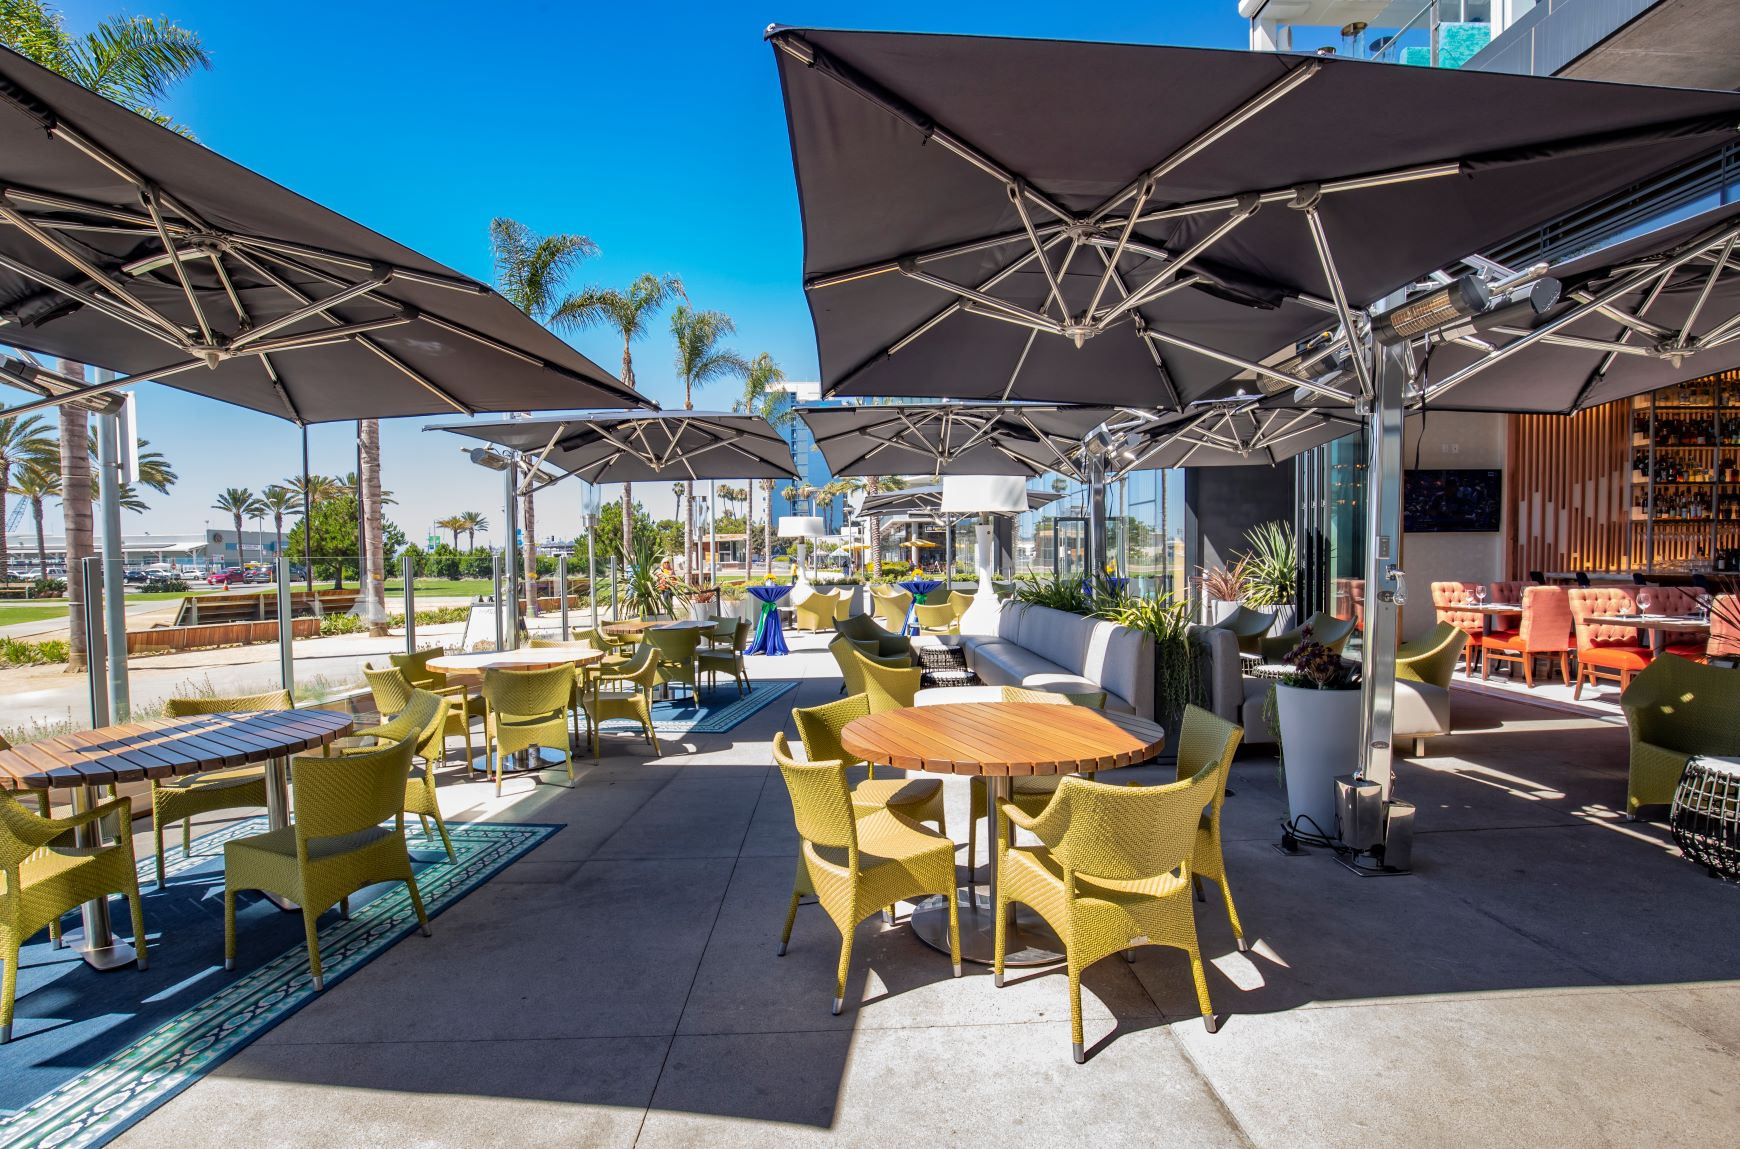 Del Frisco's Double Eagle Steakhouse San Diego Main Patio with Seaside Patio private dining room